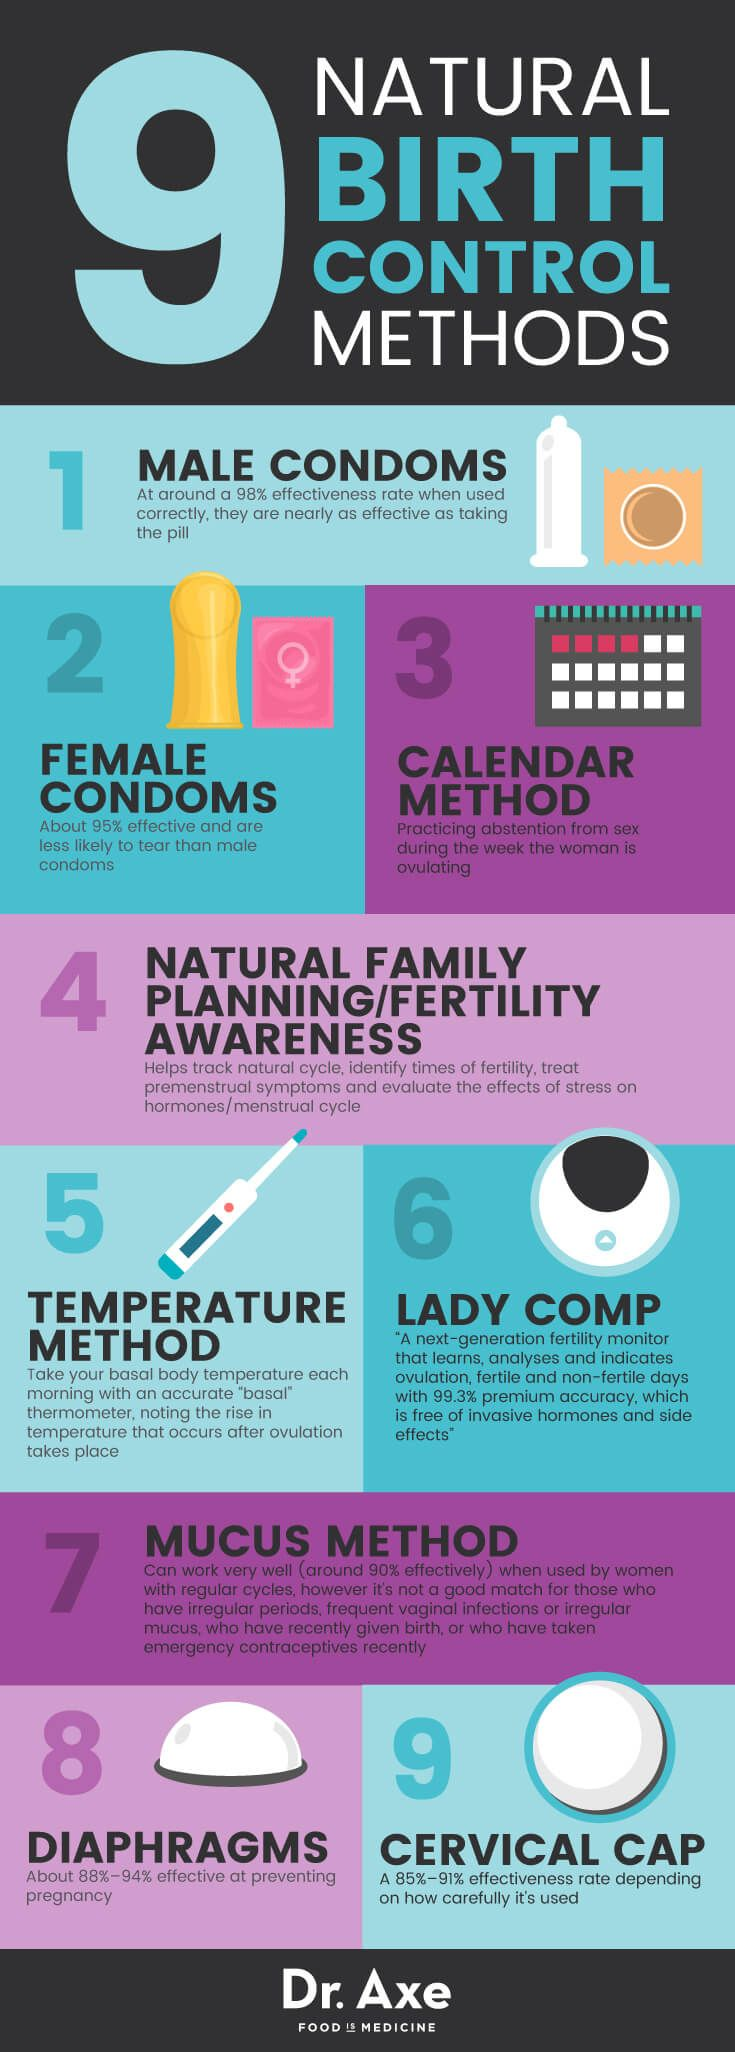 Best birth control options for me